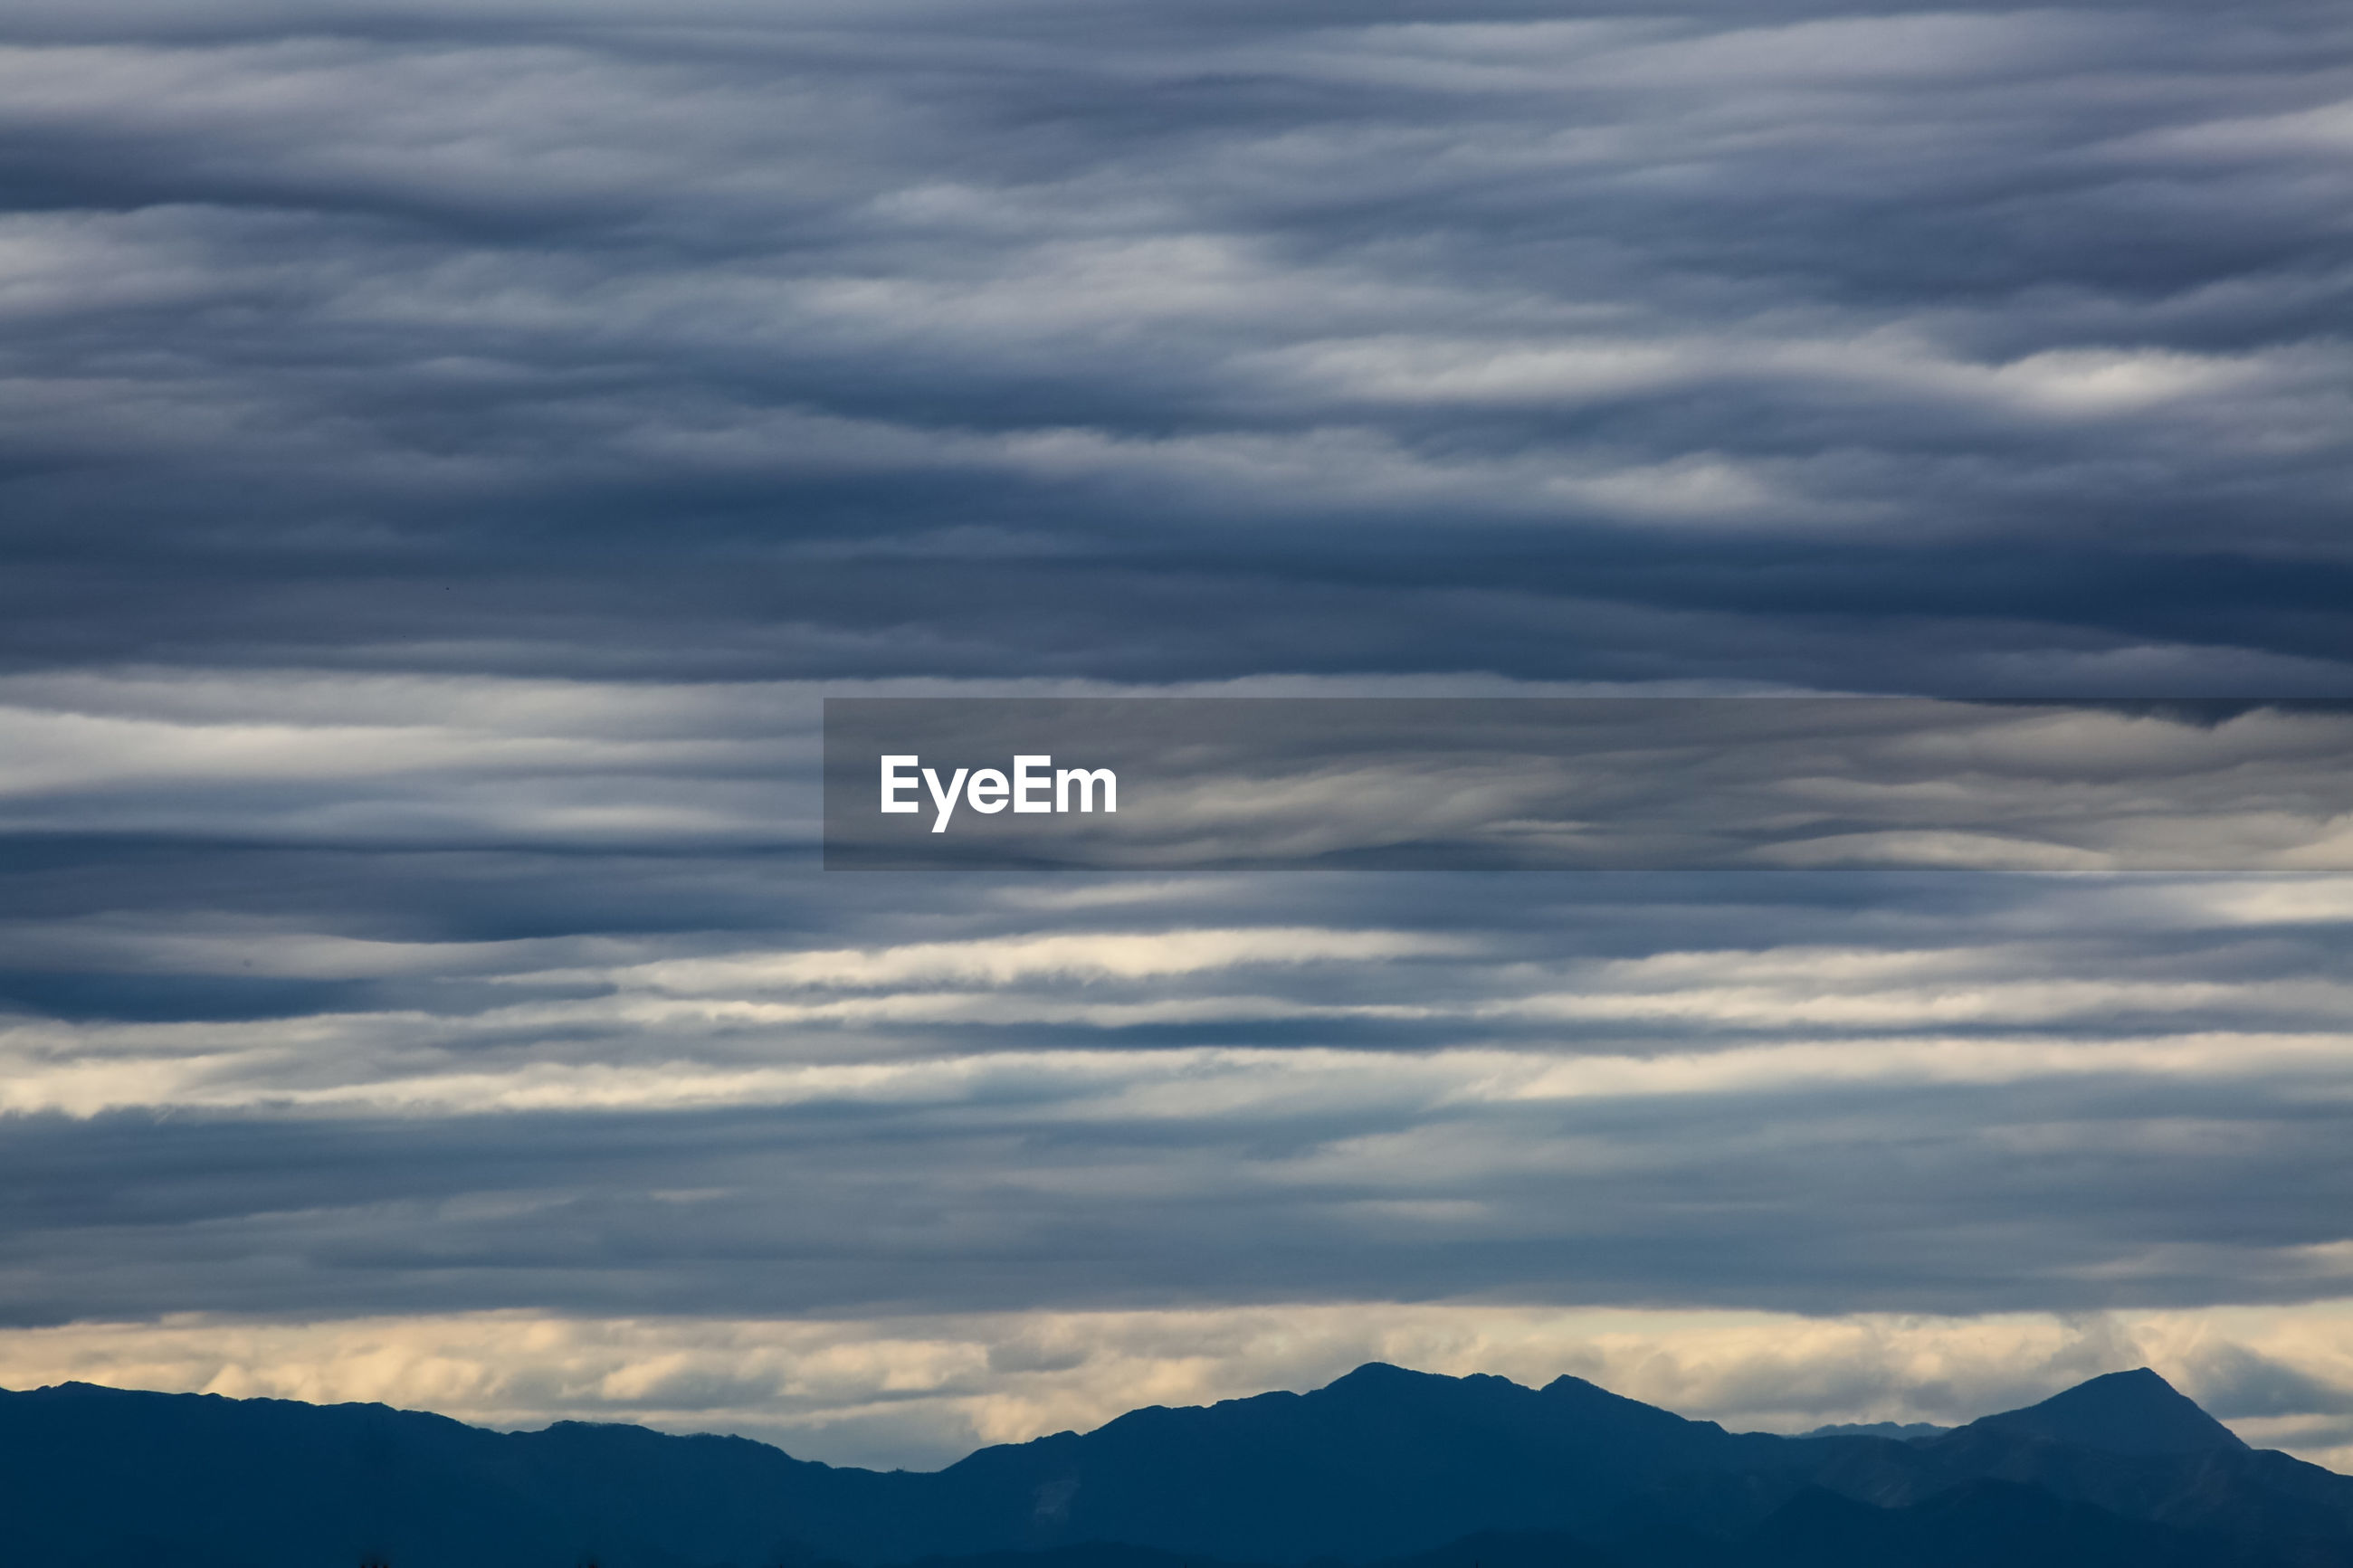 LOW ANGLE VIEW OF MOUNTAINS AGAINST SKY AT SUNSET